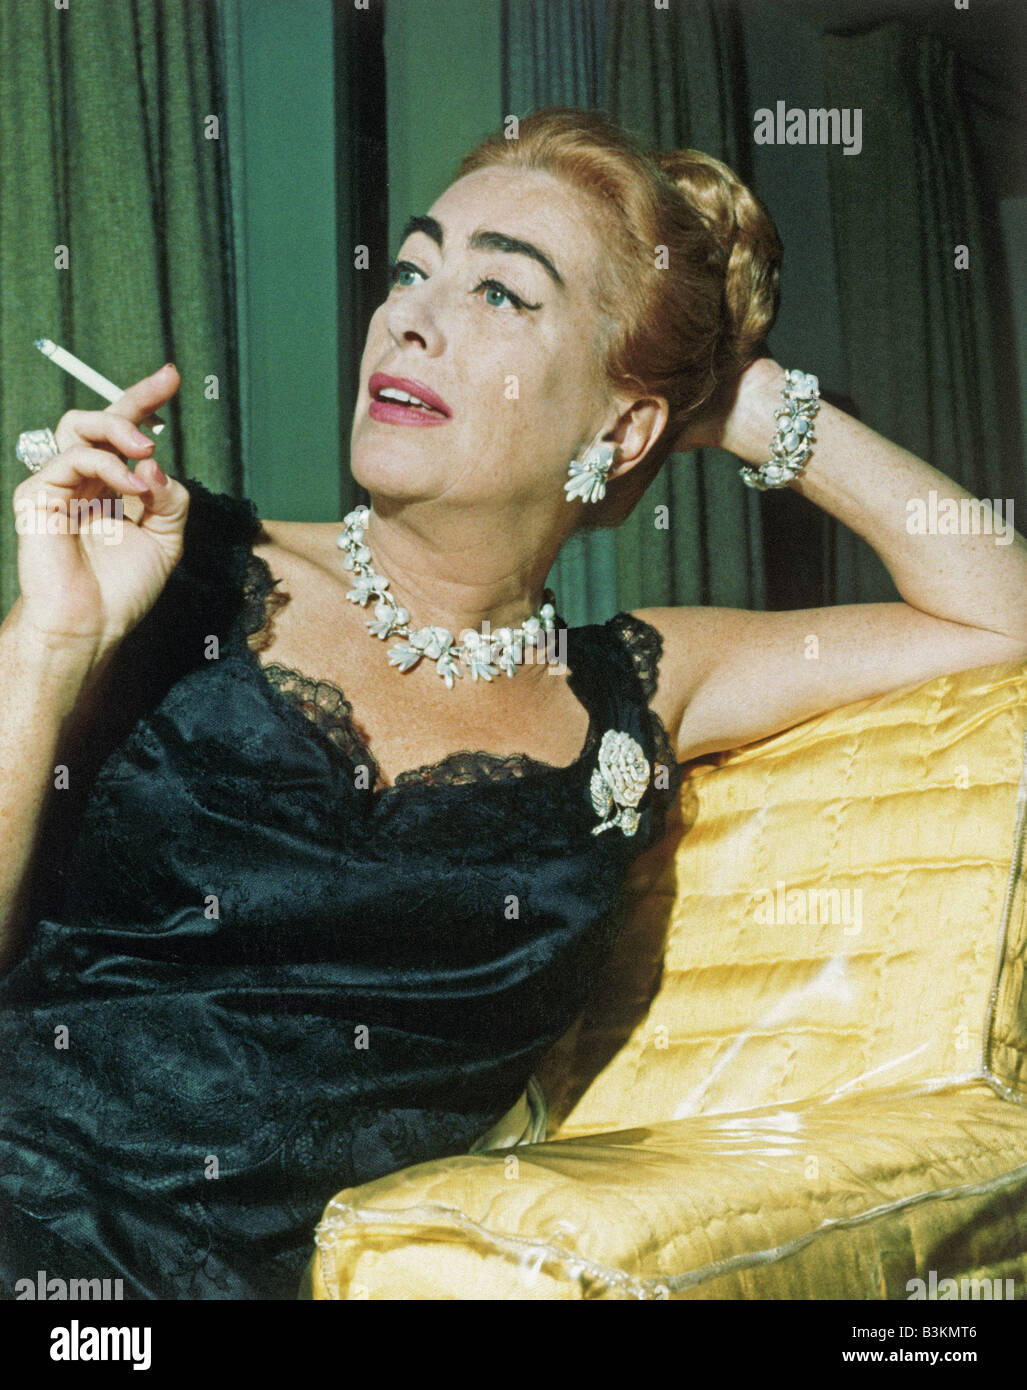 Joan Crawford Us Film Actress Stock Photo Royalty Free